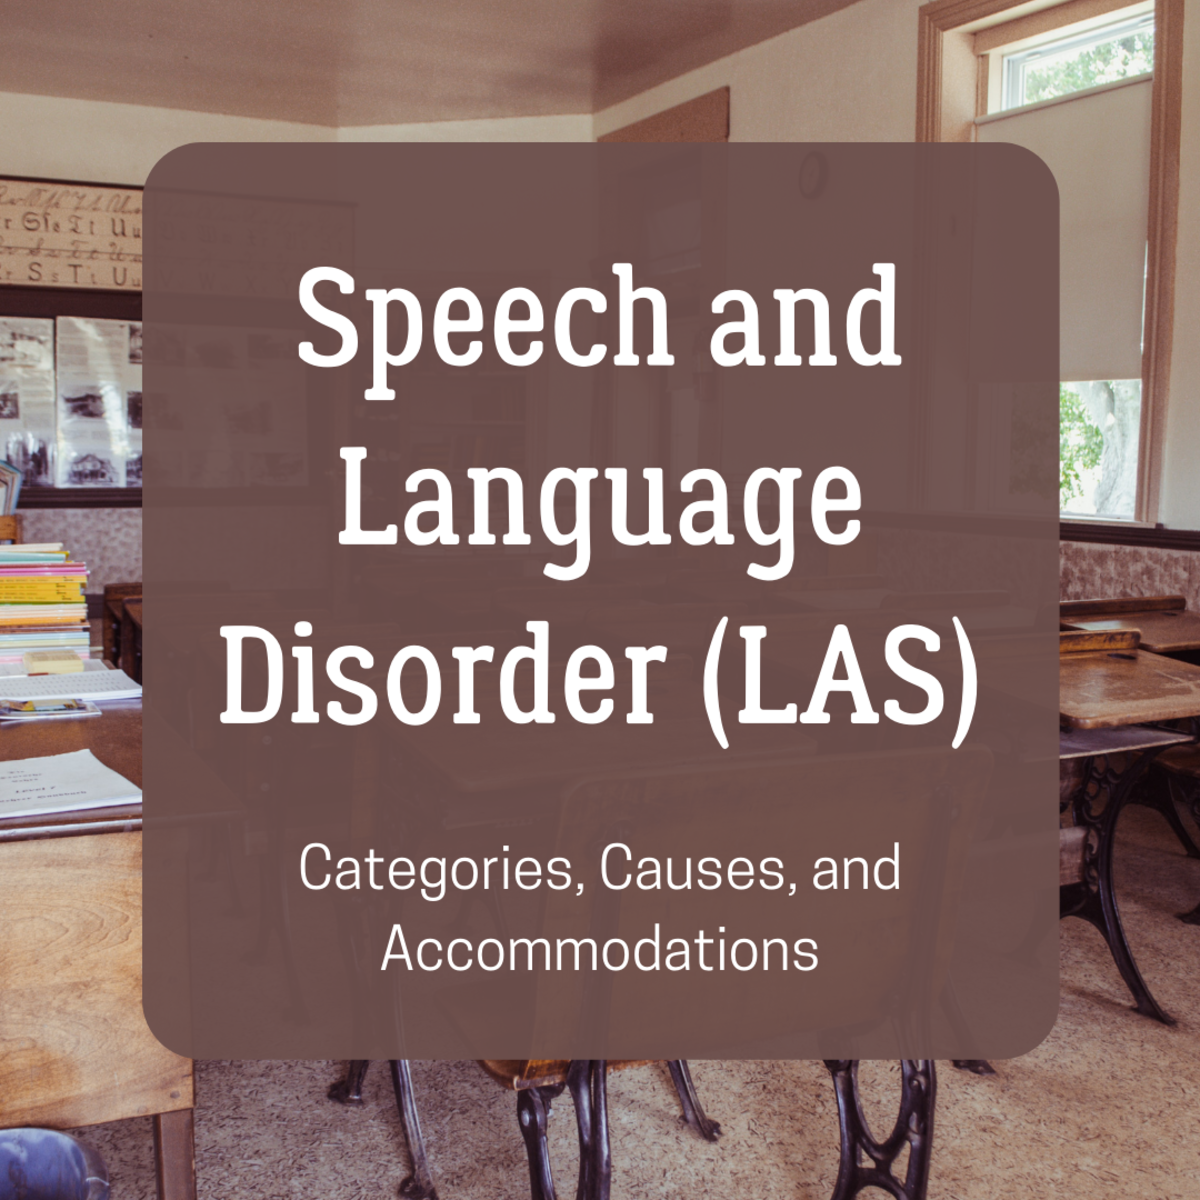 Learn more about speech and language disorder (LAS), including the different categories and how it's accommodated in the classroom.